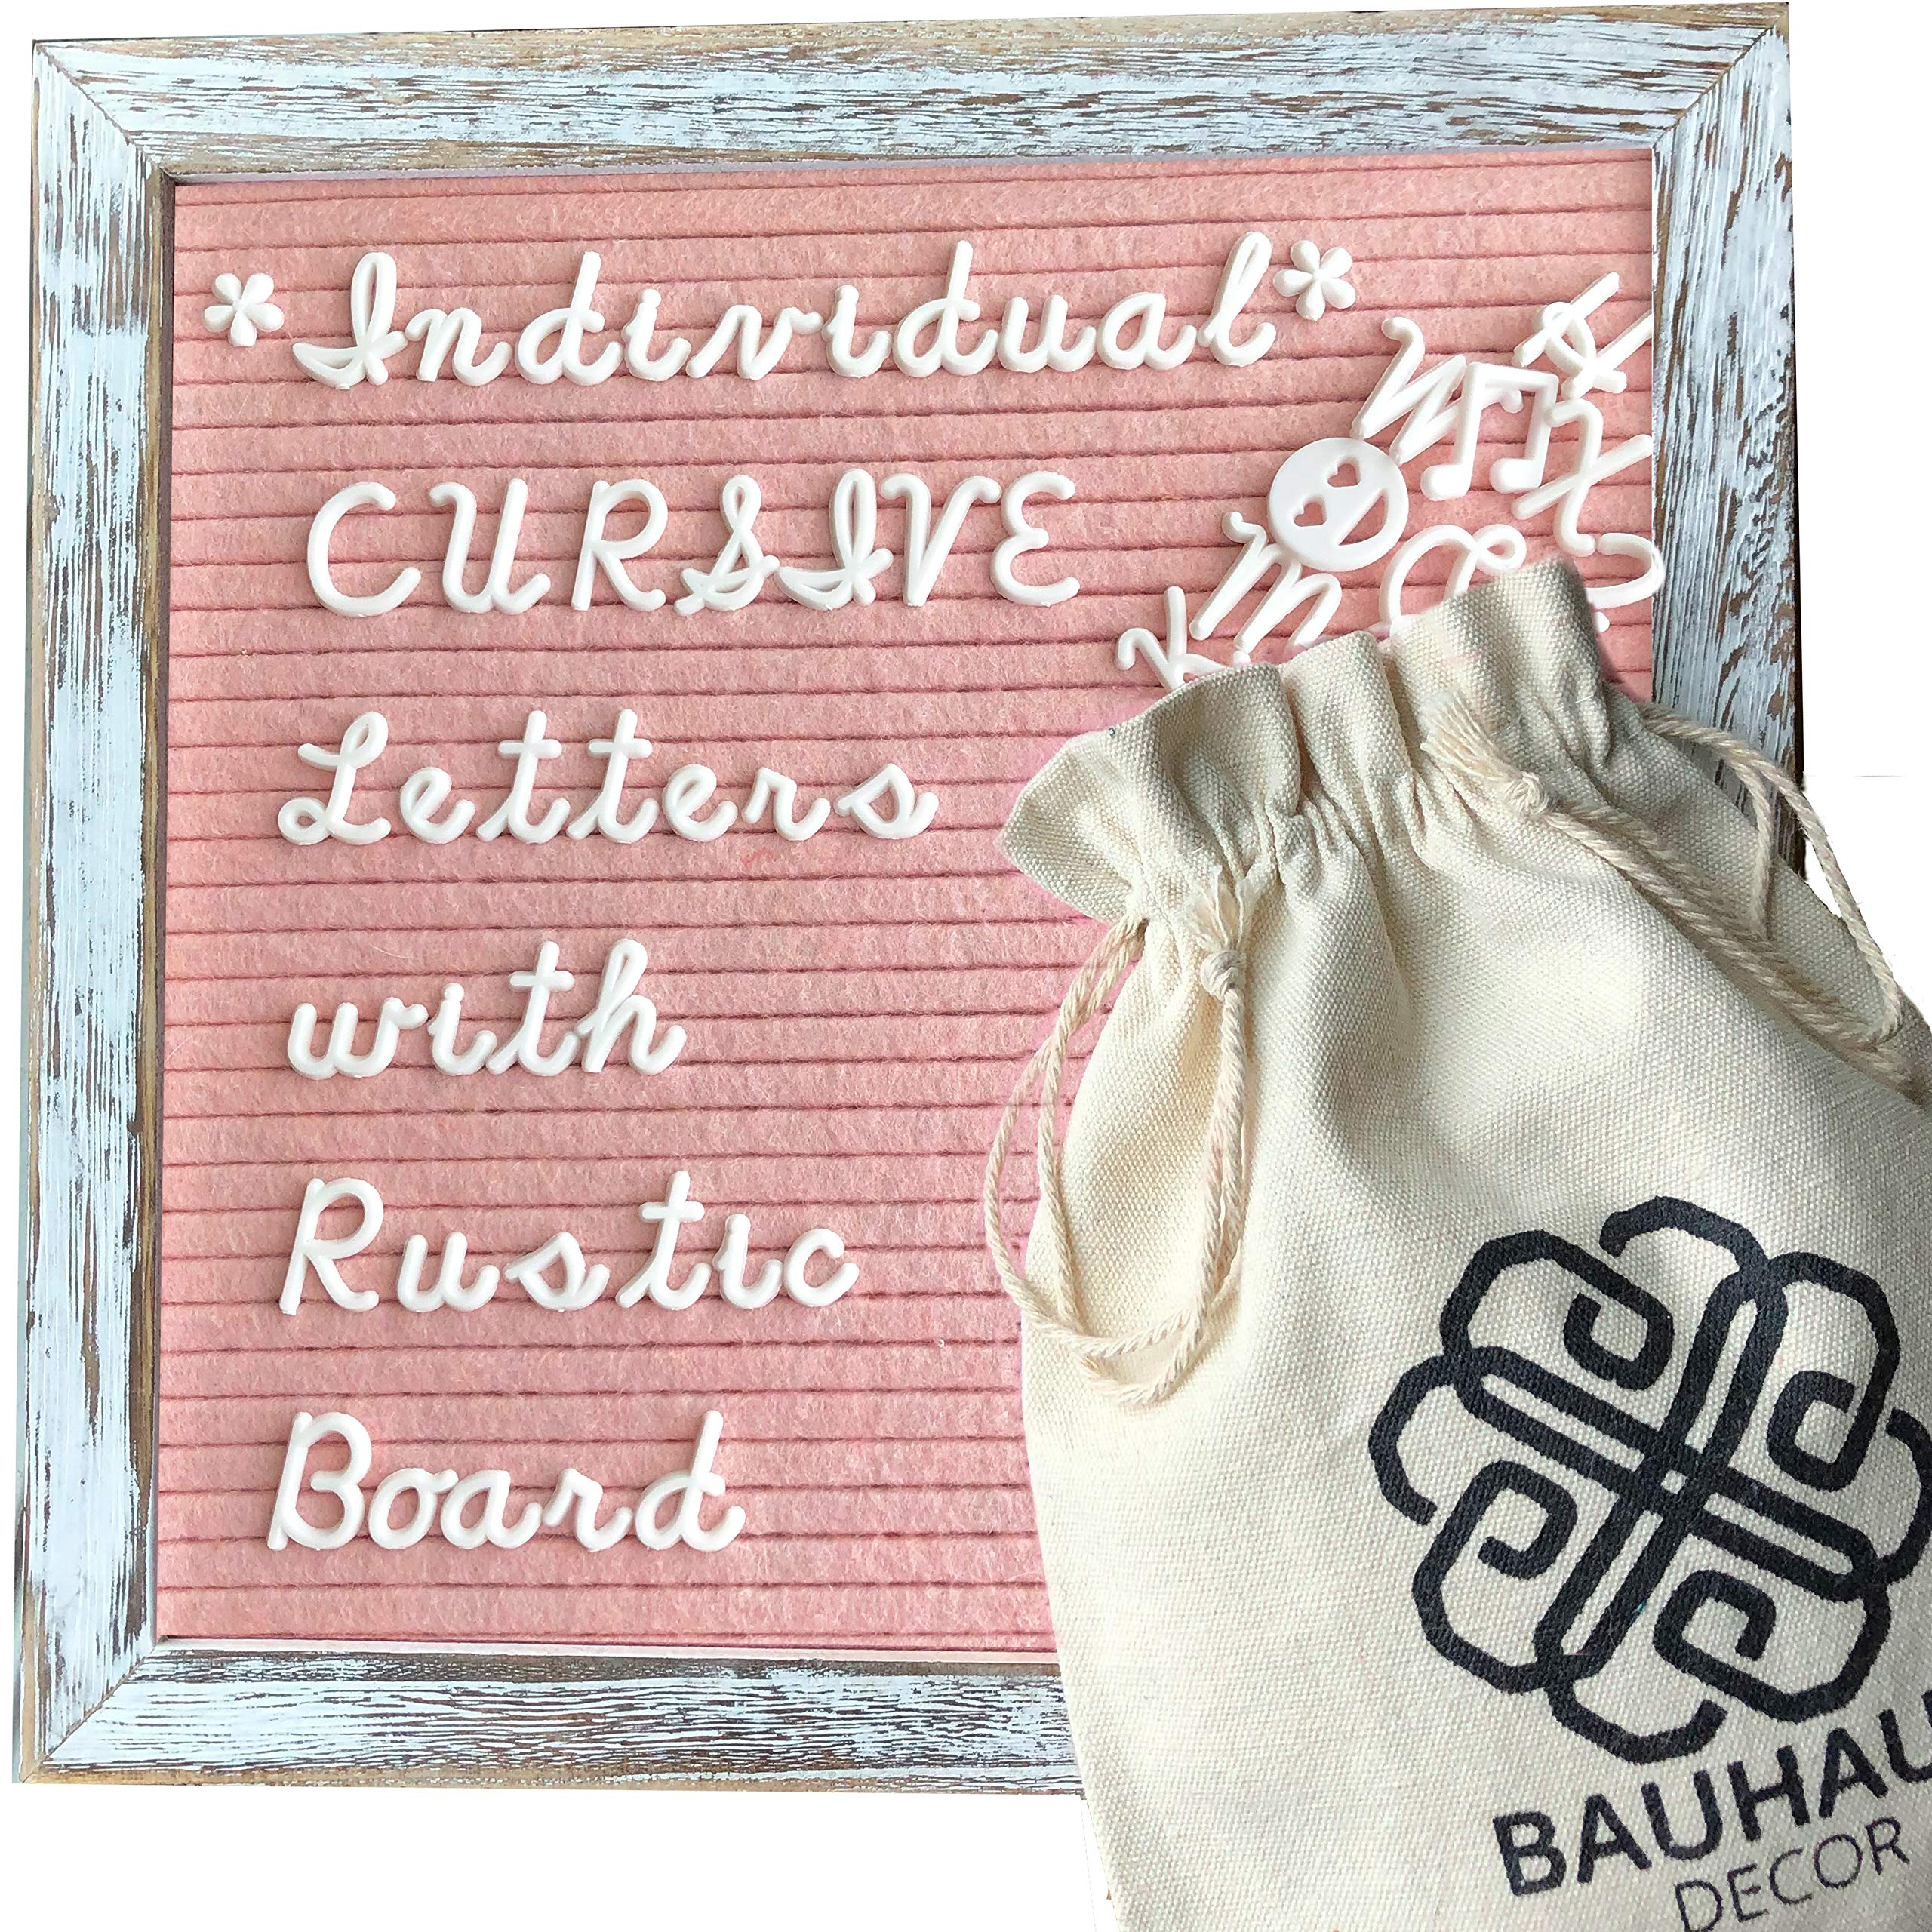 Cursive Style Letters - Blush Pink Felt Letter Board Set with 10x10 Rustic Farmhouse Wood Frame by Bauhaus Decor - Changeable Message Board with 395 White Letters, Numbers, and Emojis. by Bauhaus Decor